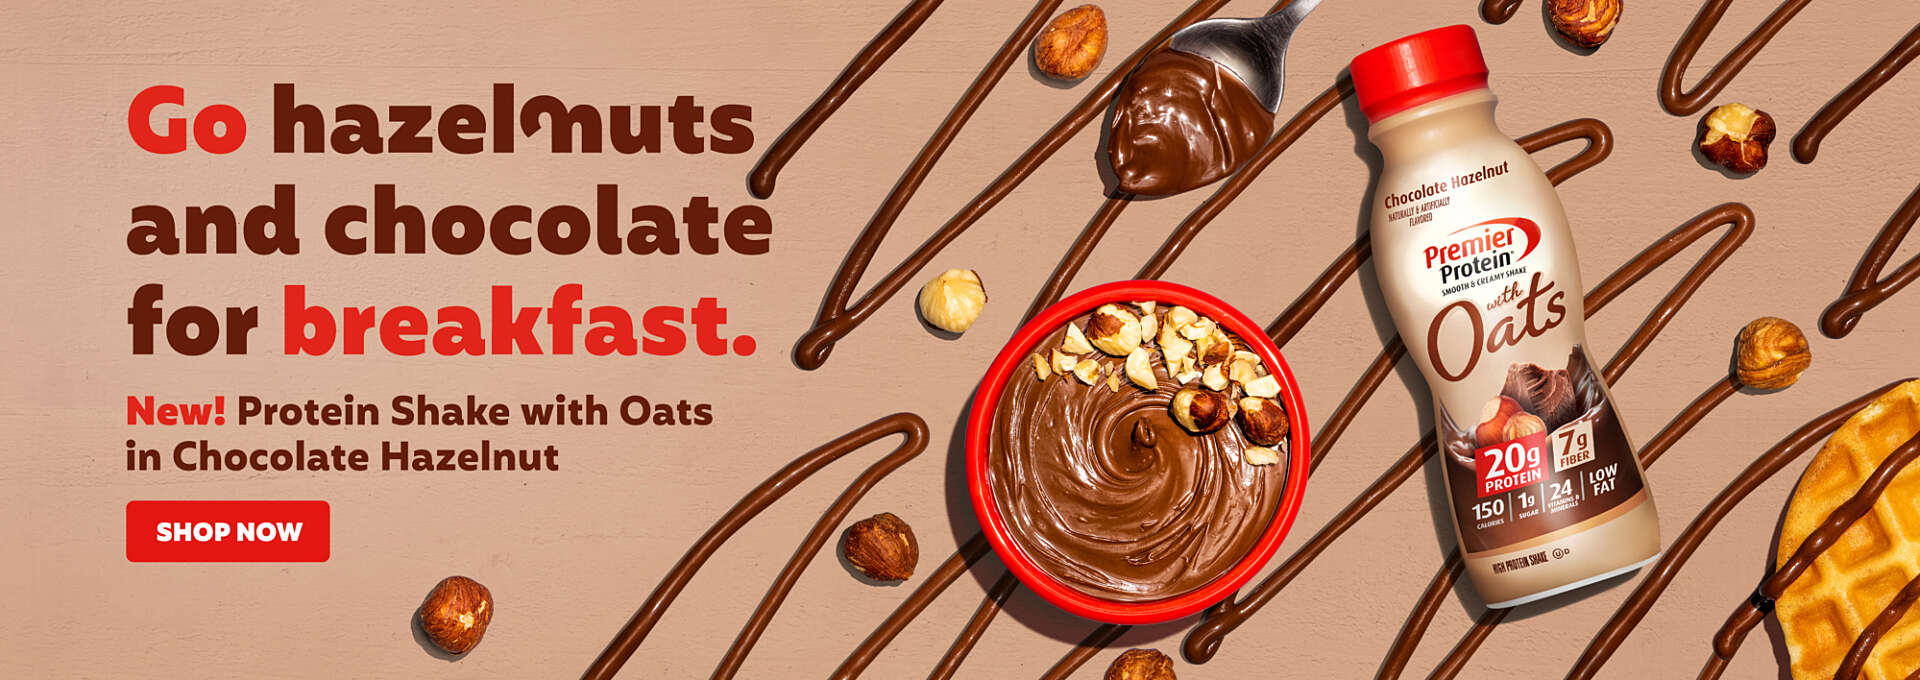 Go hazelnuts and chocolate for breakfast!